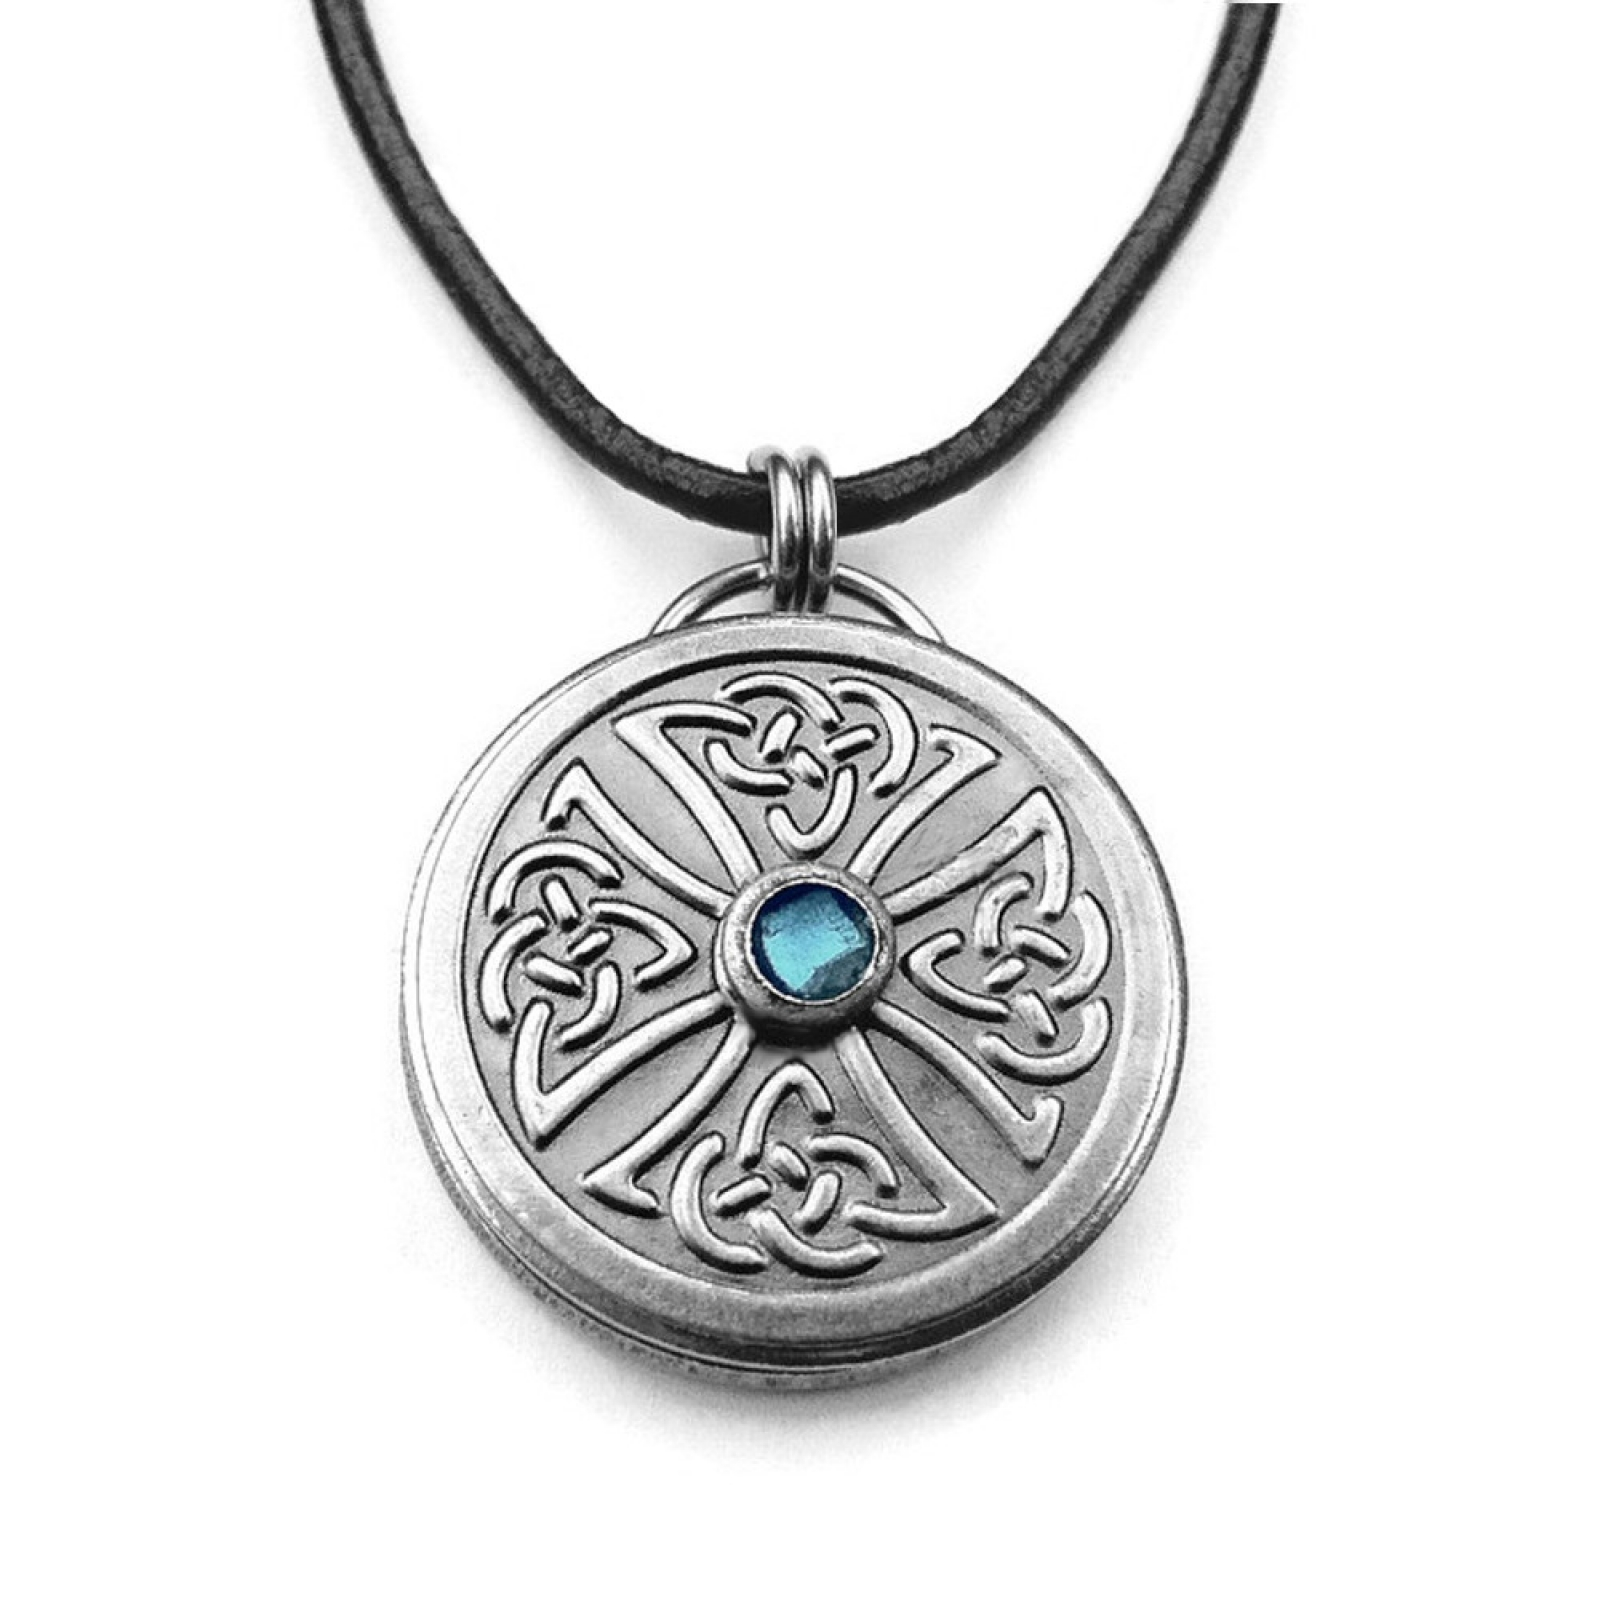 necklace sharpen product prd hei diamond accent celtic sterling wid knot silver op jsp pendant